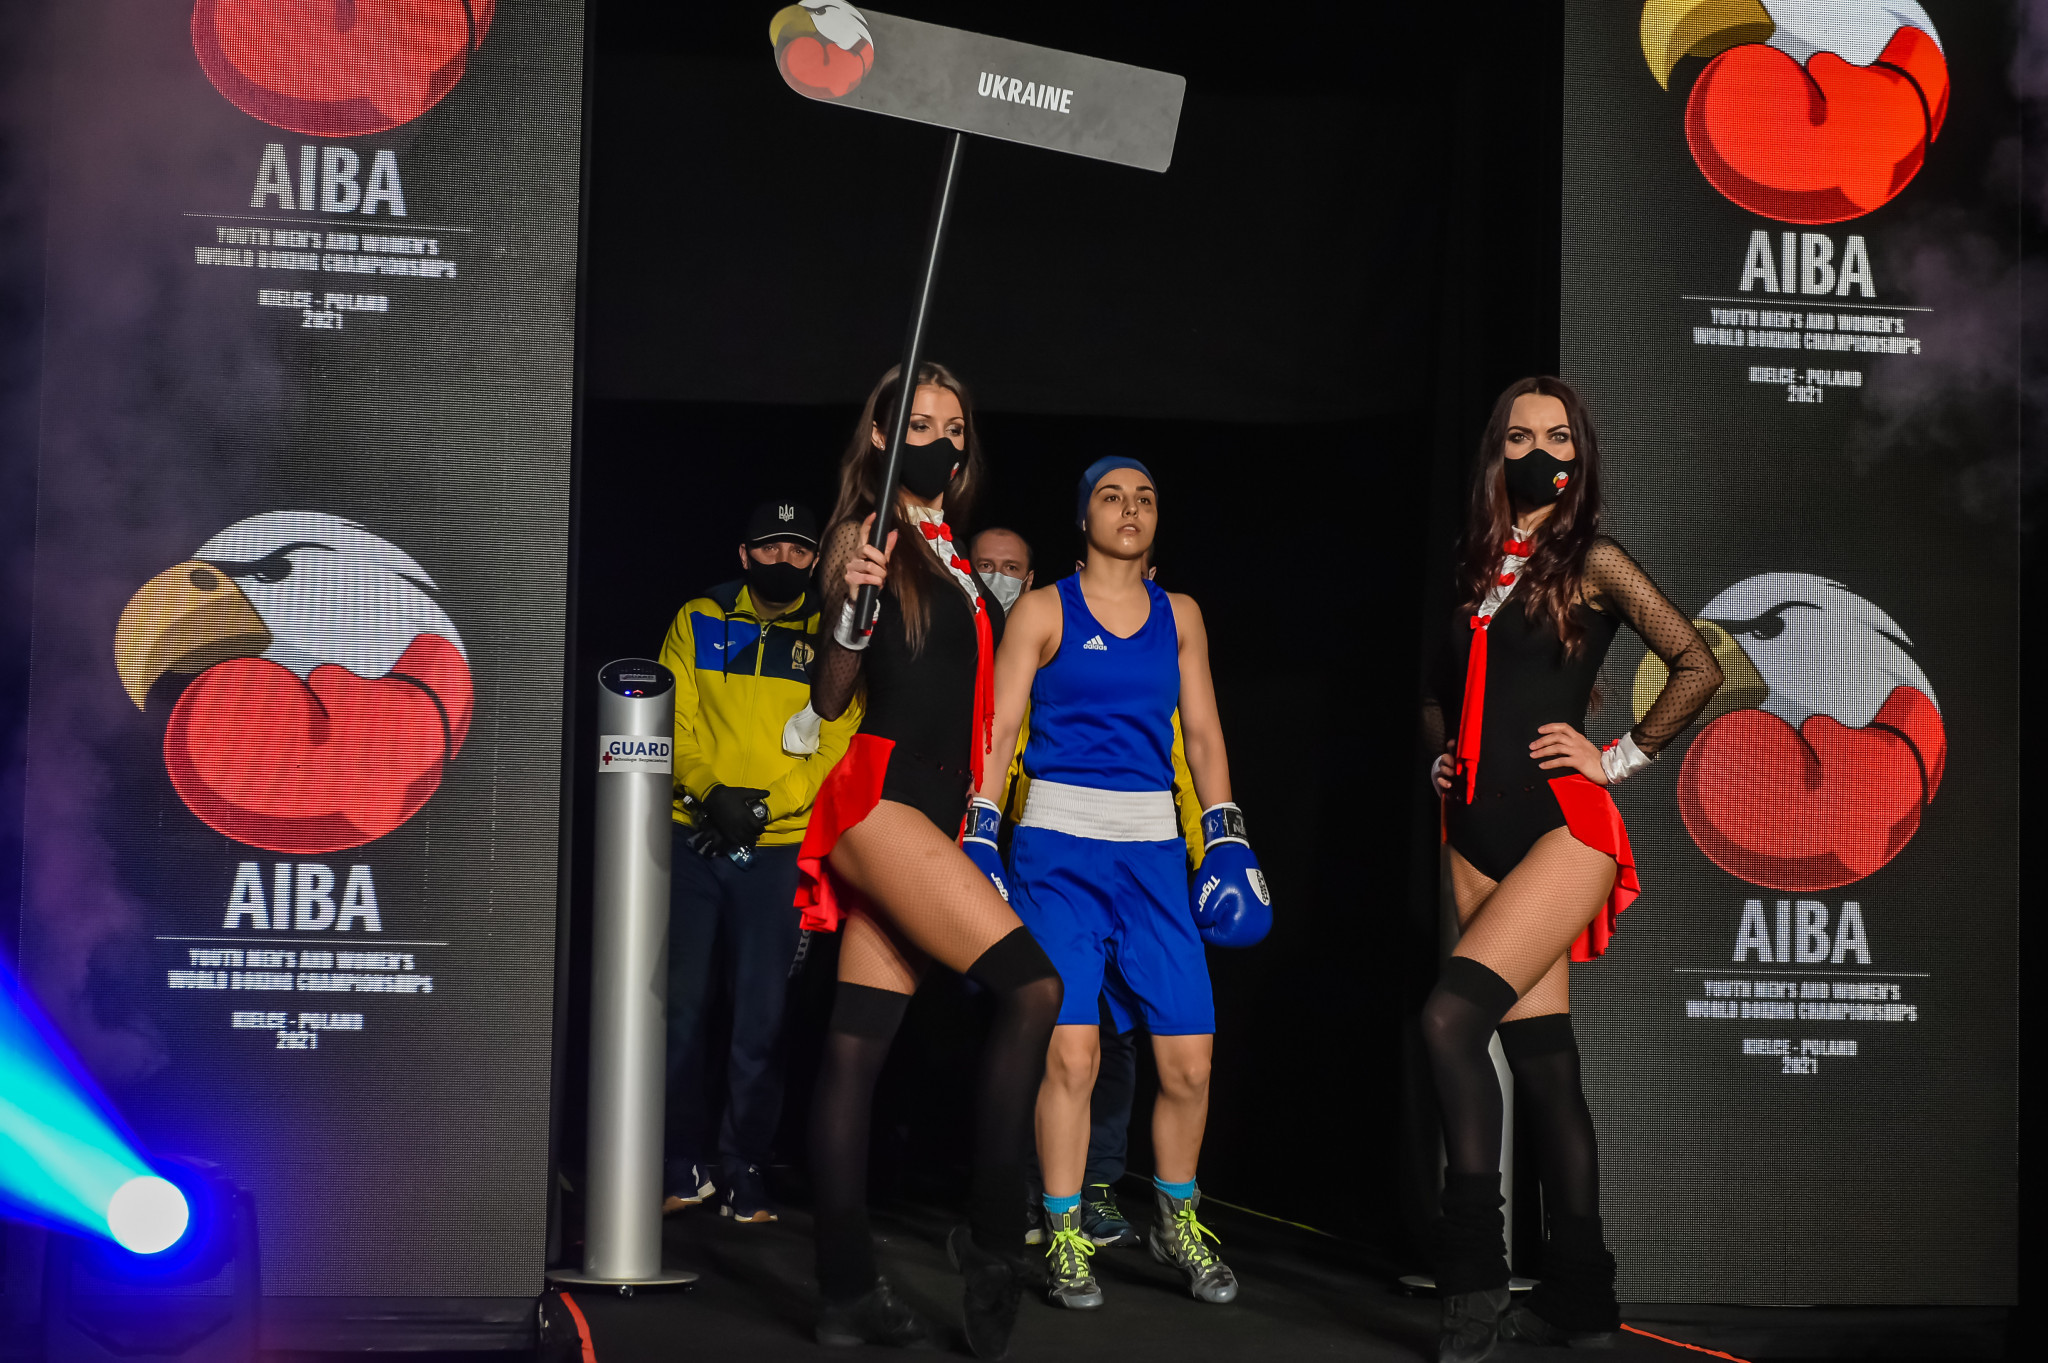 Khrystyna Lakiichuk of Ukraine enters the ring for the women's bantamweight final ©AIBA